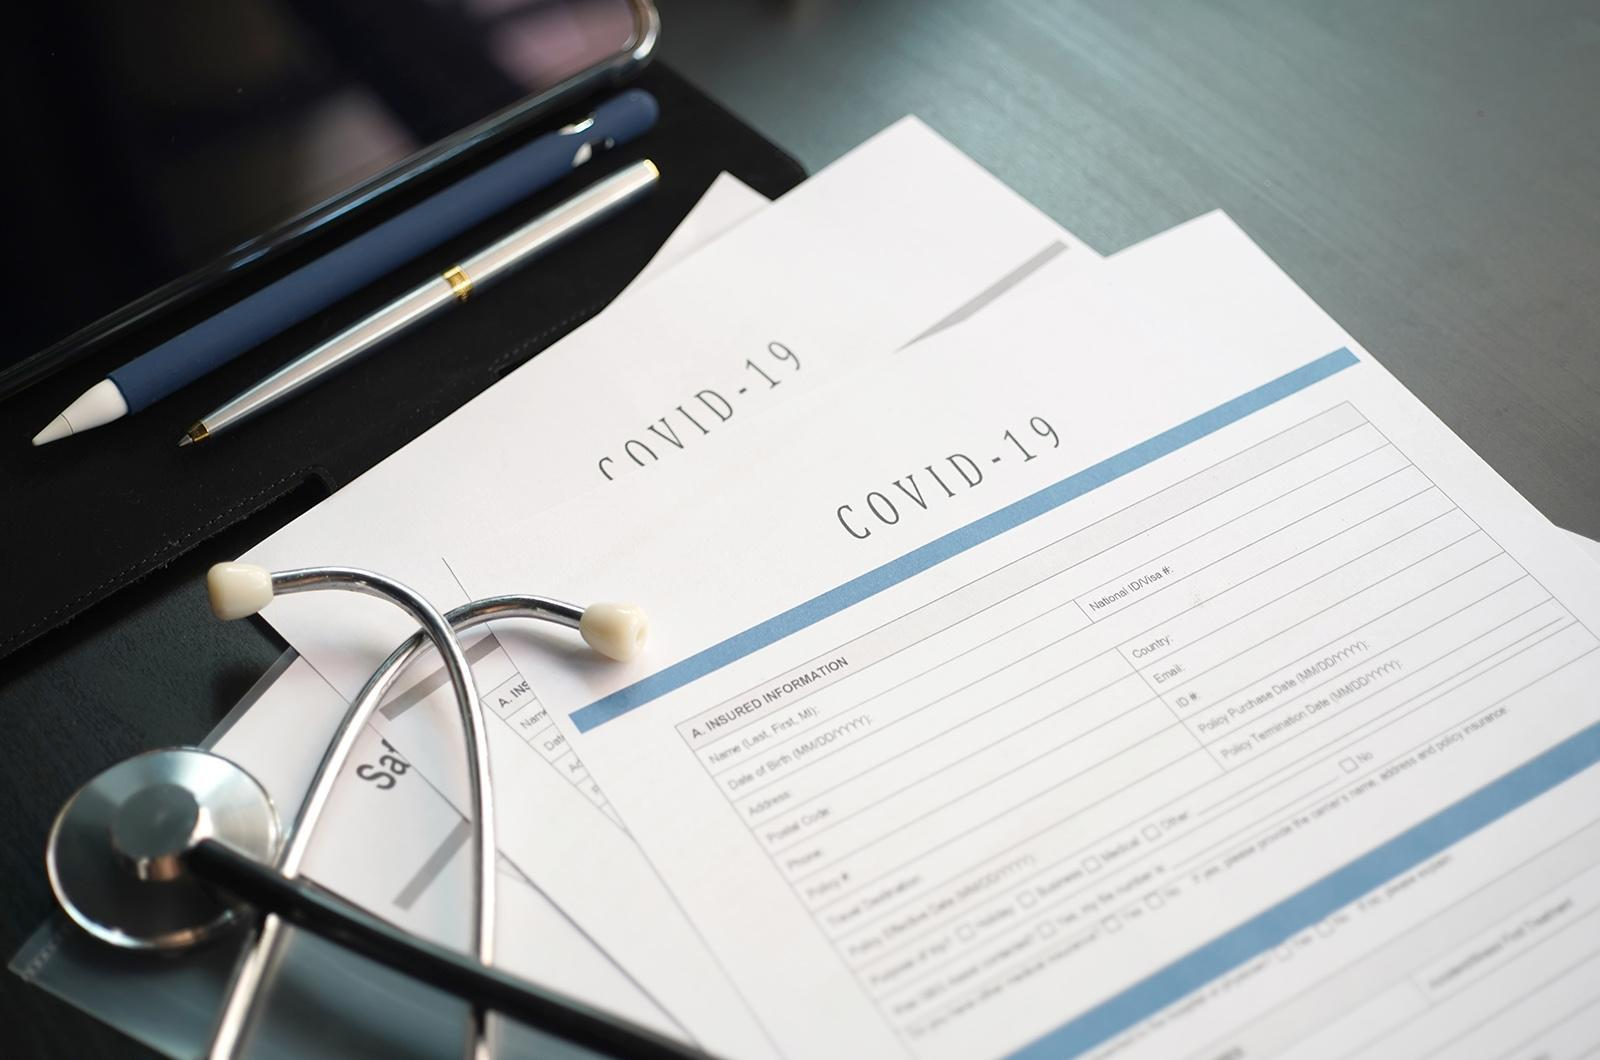 Establishing a vaccination policy for your workplace